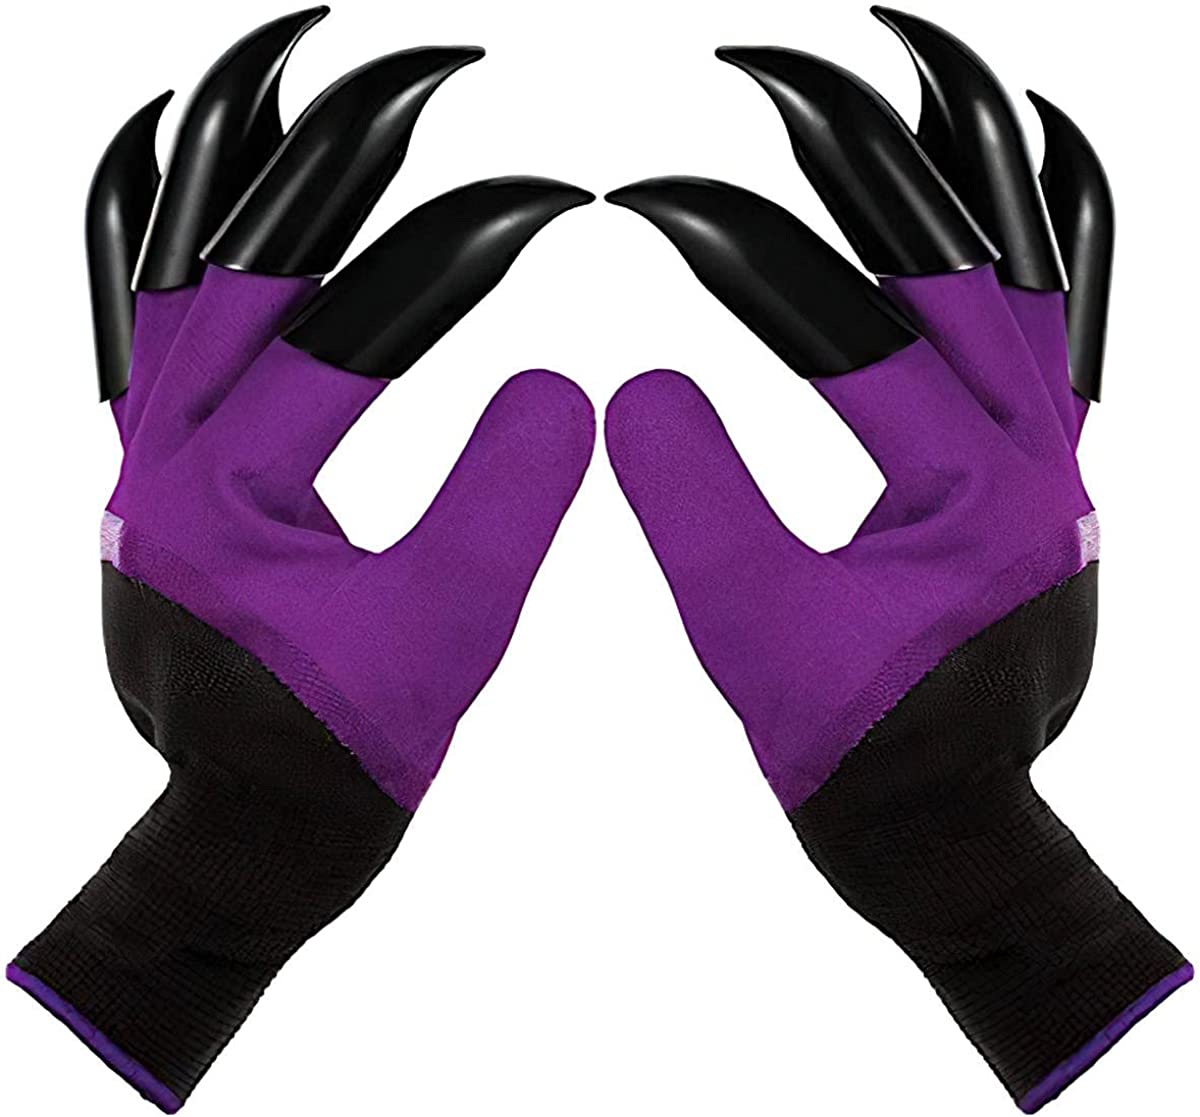 Garden Gloves for Women Thorn Proof with Claws Waterproof Gardening Tools Outdoor Digging Planting Weeding Seed